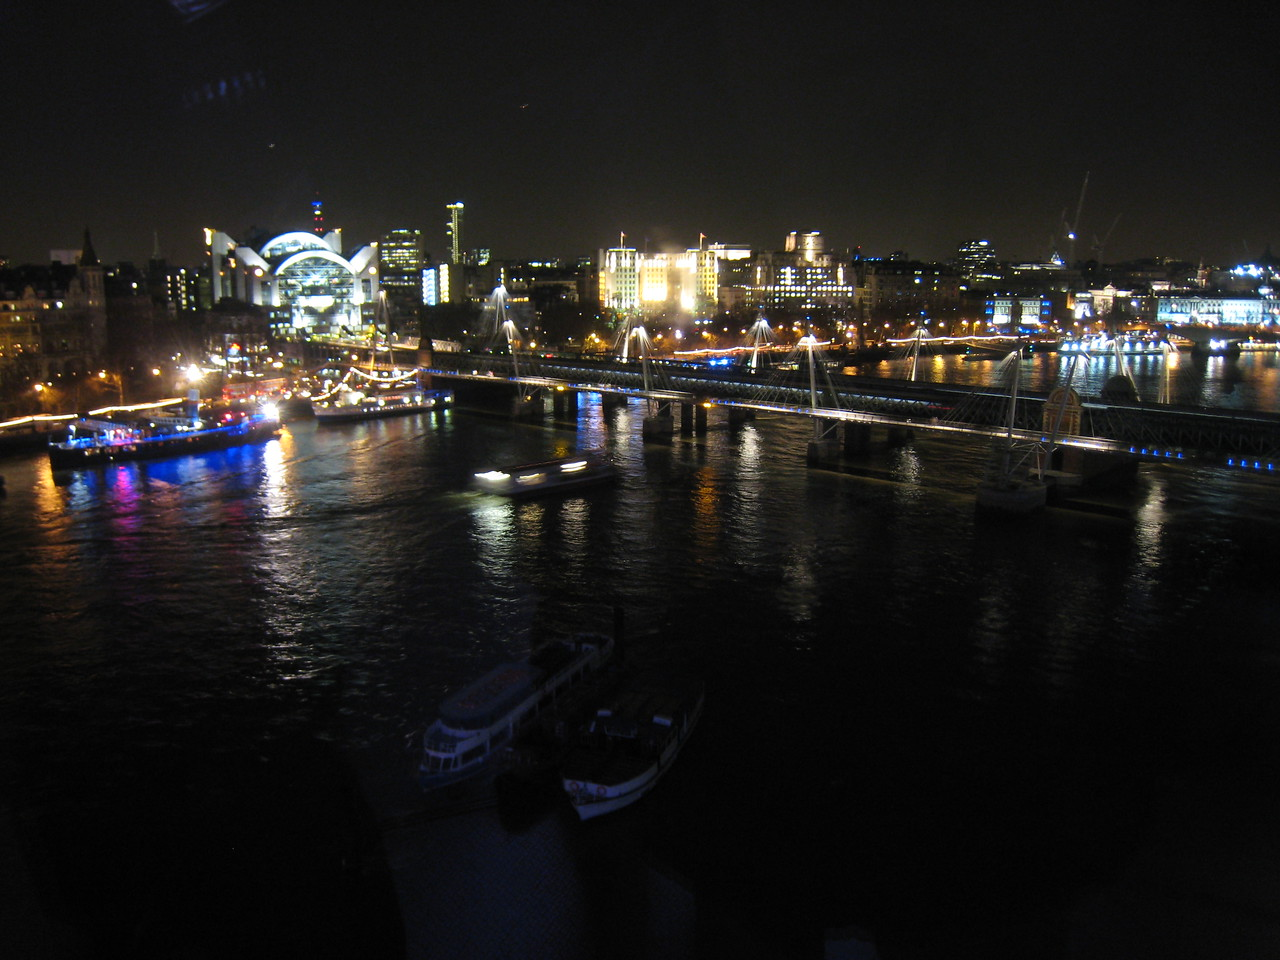 The Thames from the London Eye